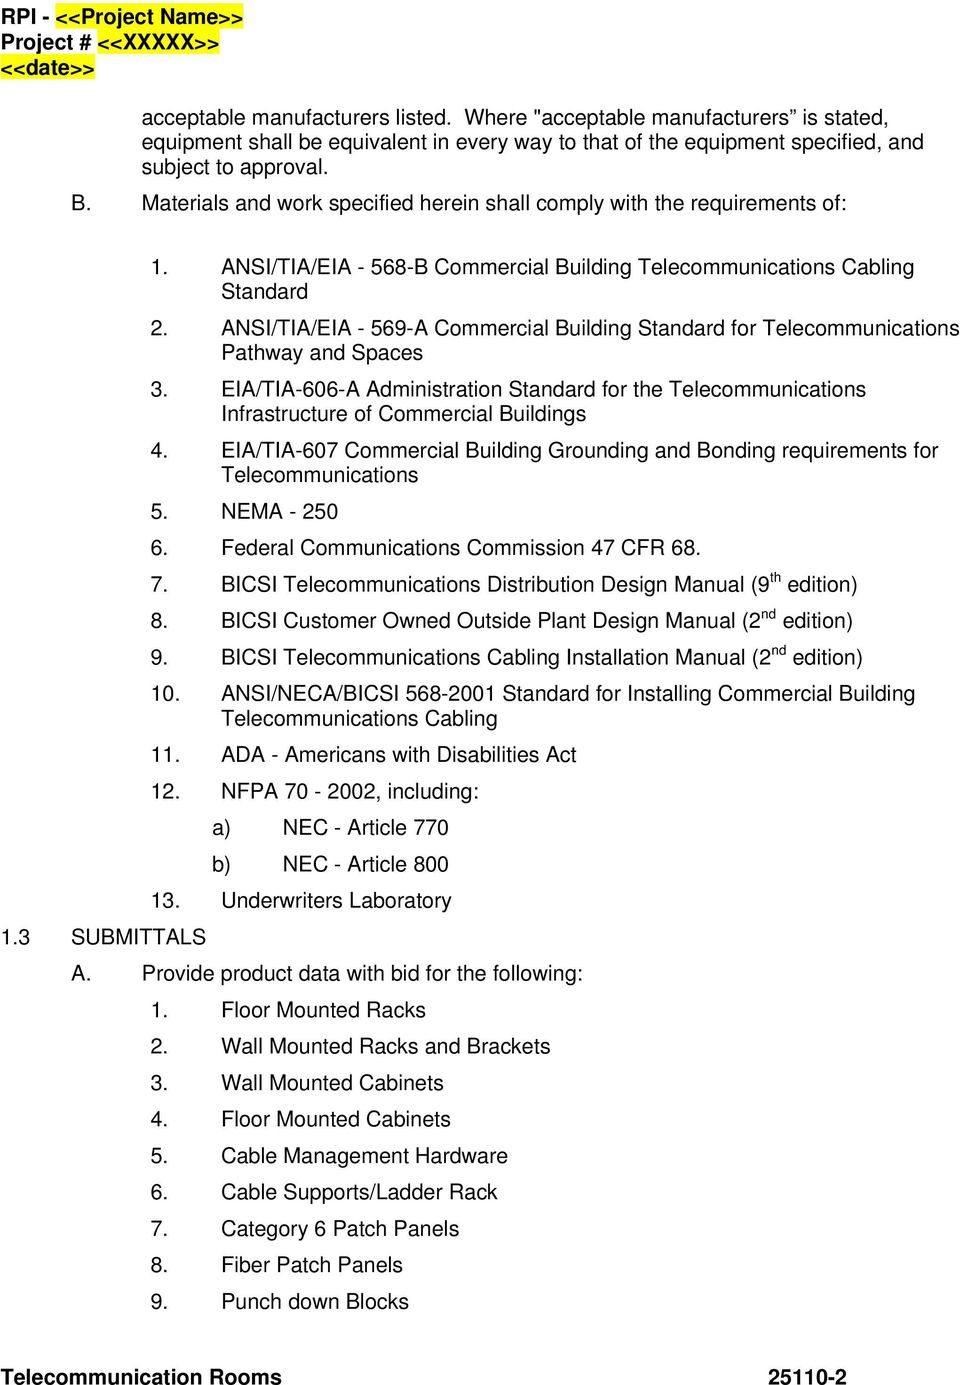 ANSI/TIA/EIA - 569-A Commercial Building Standard for Telecommunications Pathway and Spaces 3.